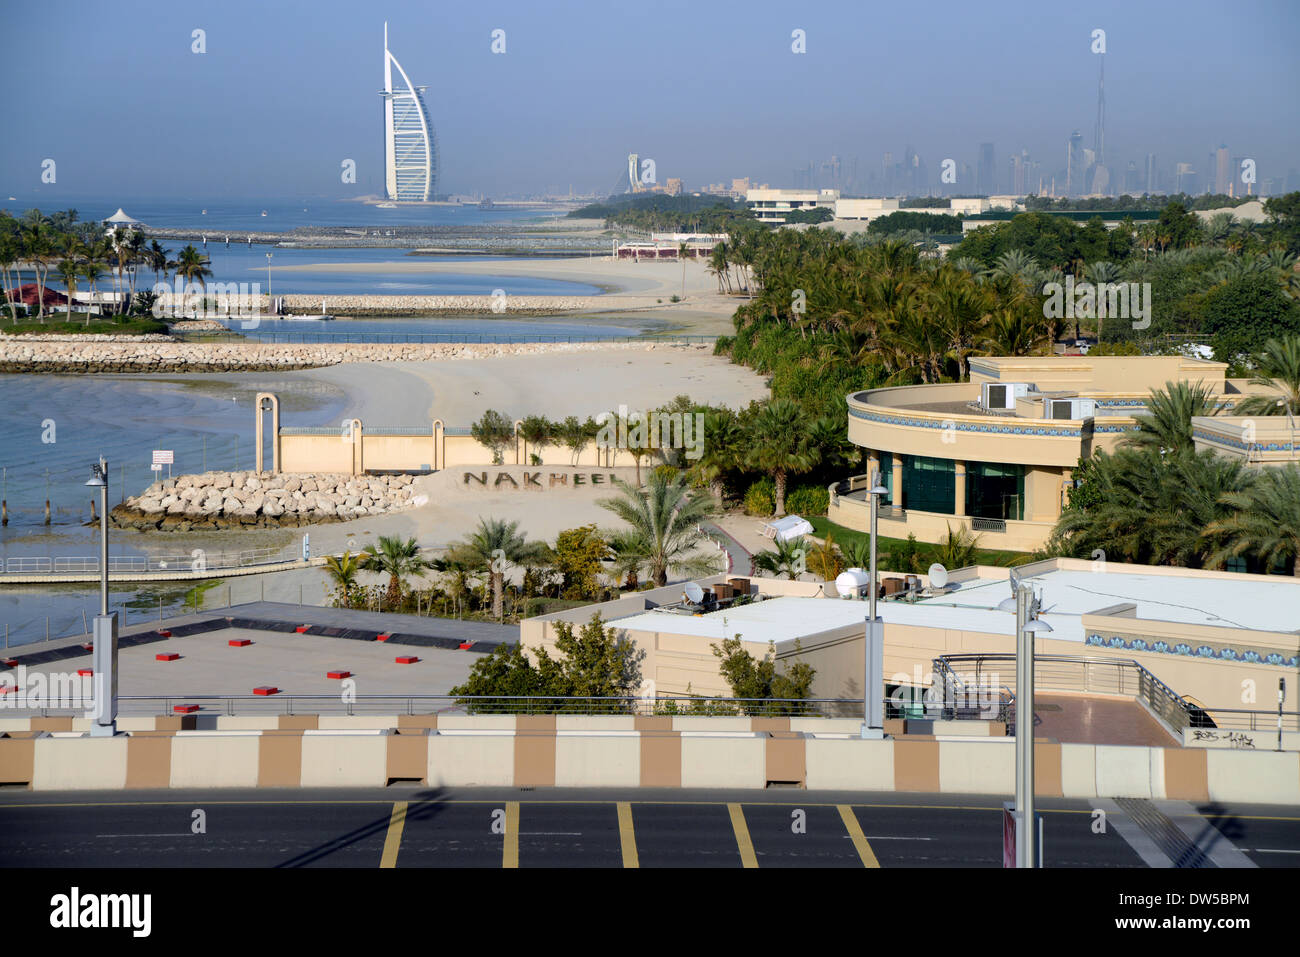 DUBAI - The view from the monorail heading to the Palm resort  with the iconic Burj Al Arab hotel on the skyline Stock Photo